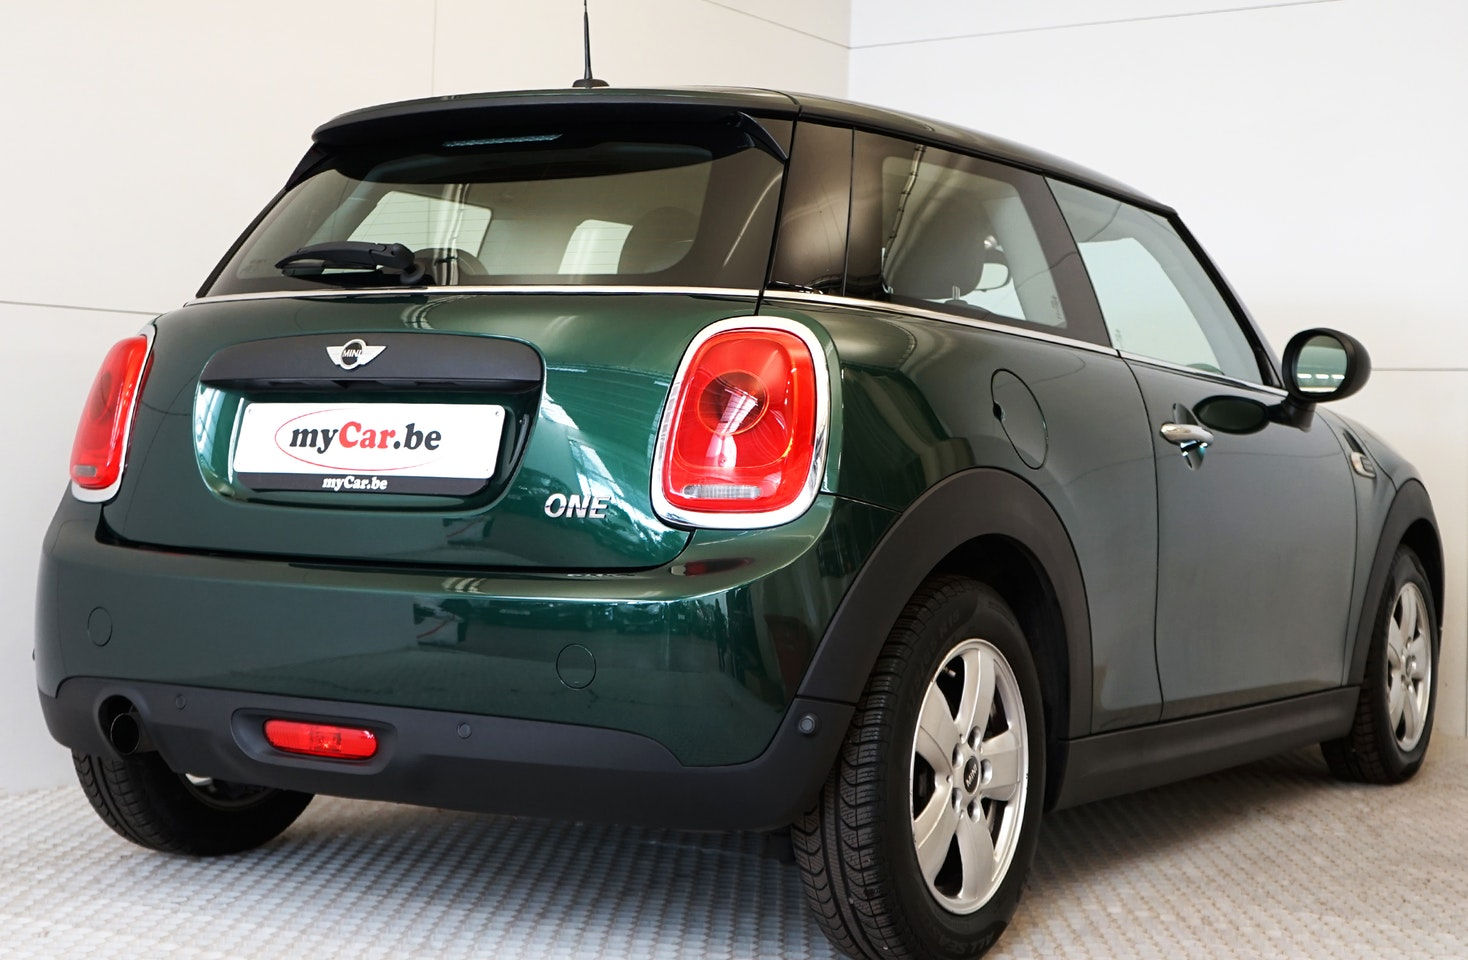 mycar-braine-lalleud-voitures-occasion-mini-cooper-one-first-4